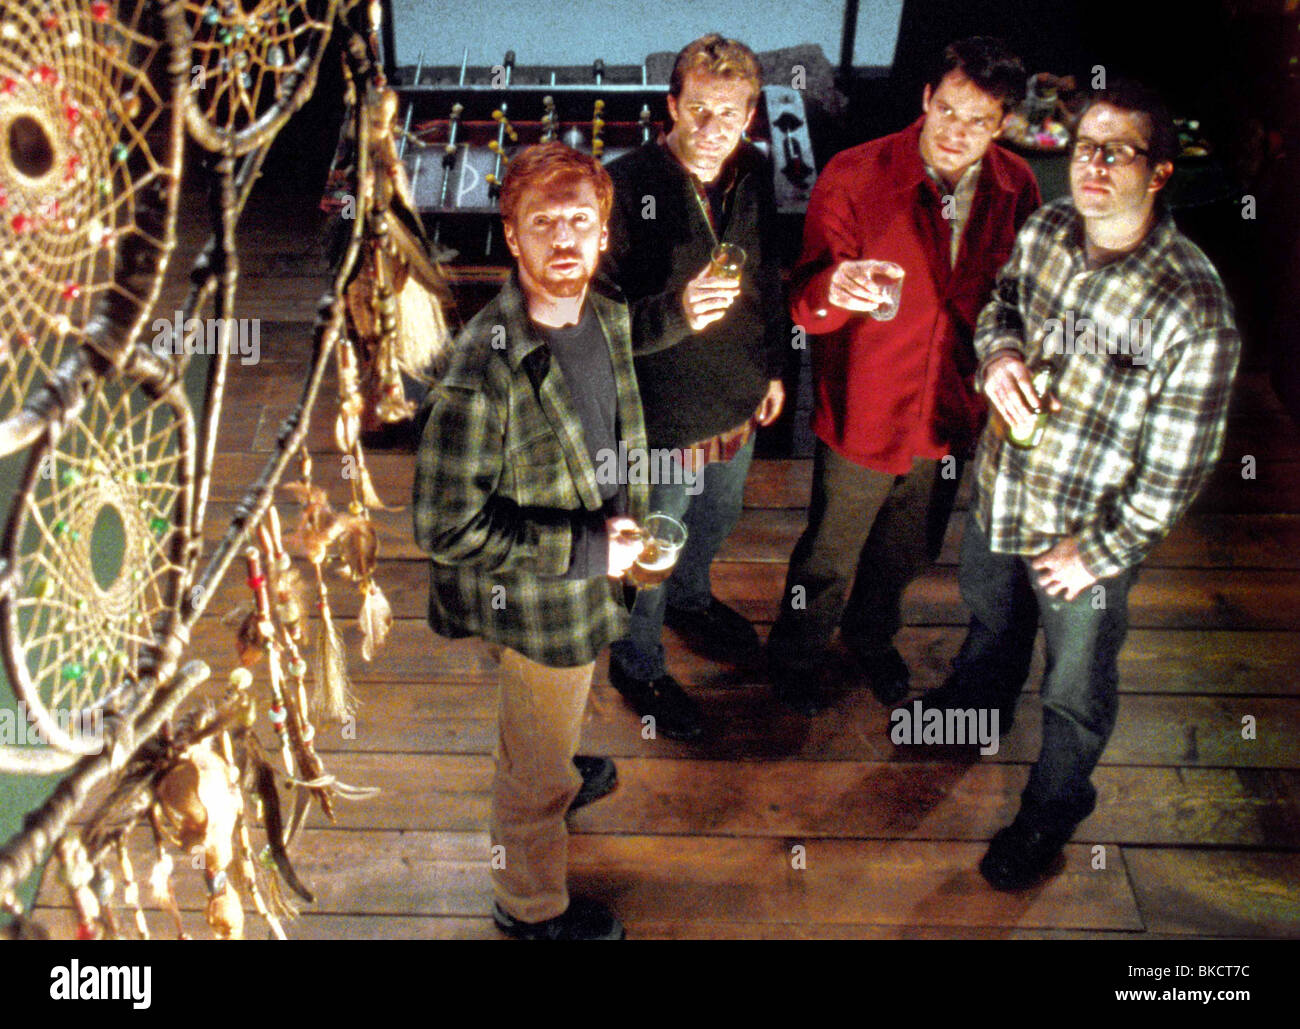 DREAMCATCHER (2003) DAMIAN LEWIS, THOMAS JANE, TIMOTHY OLYPHANT, JASON LEE DRCH 001-FCDC - Stock Image